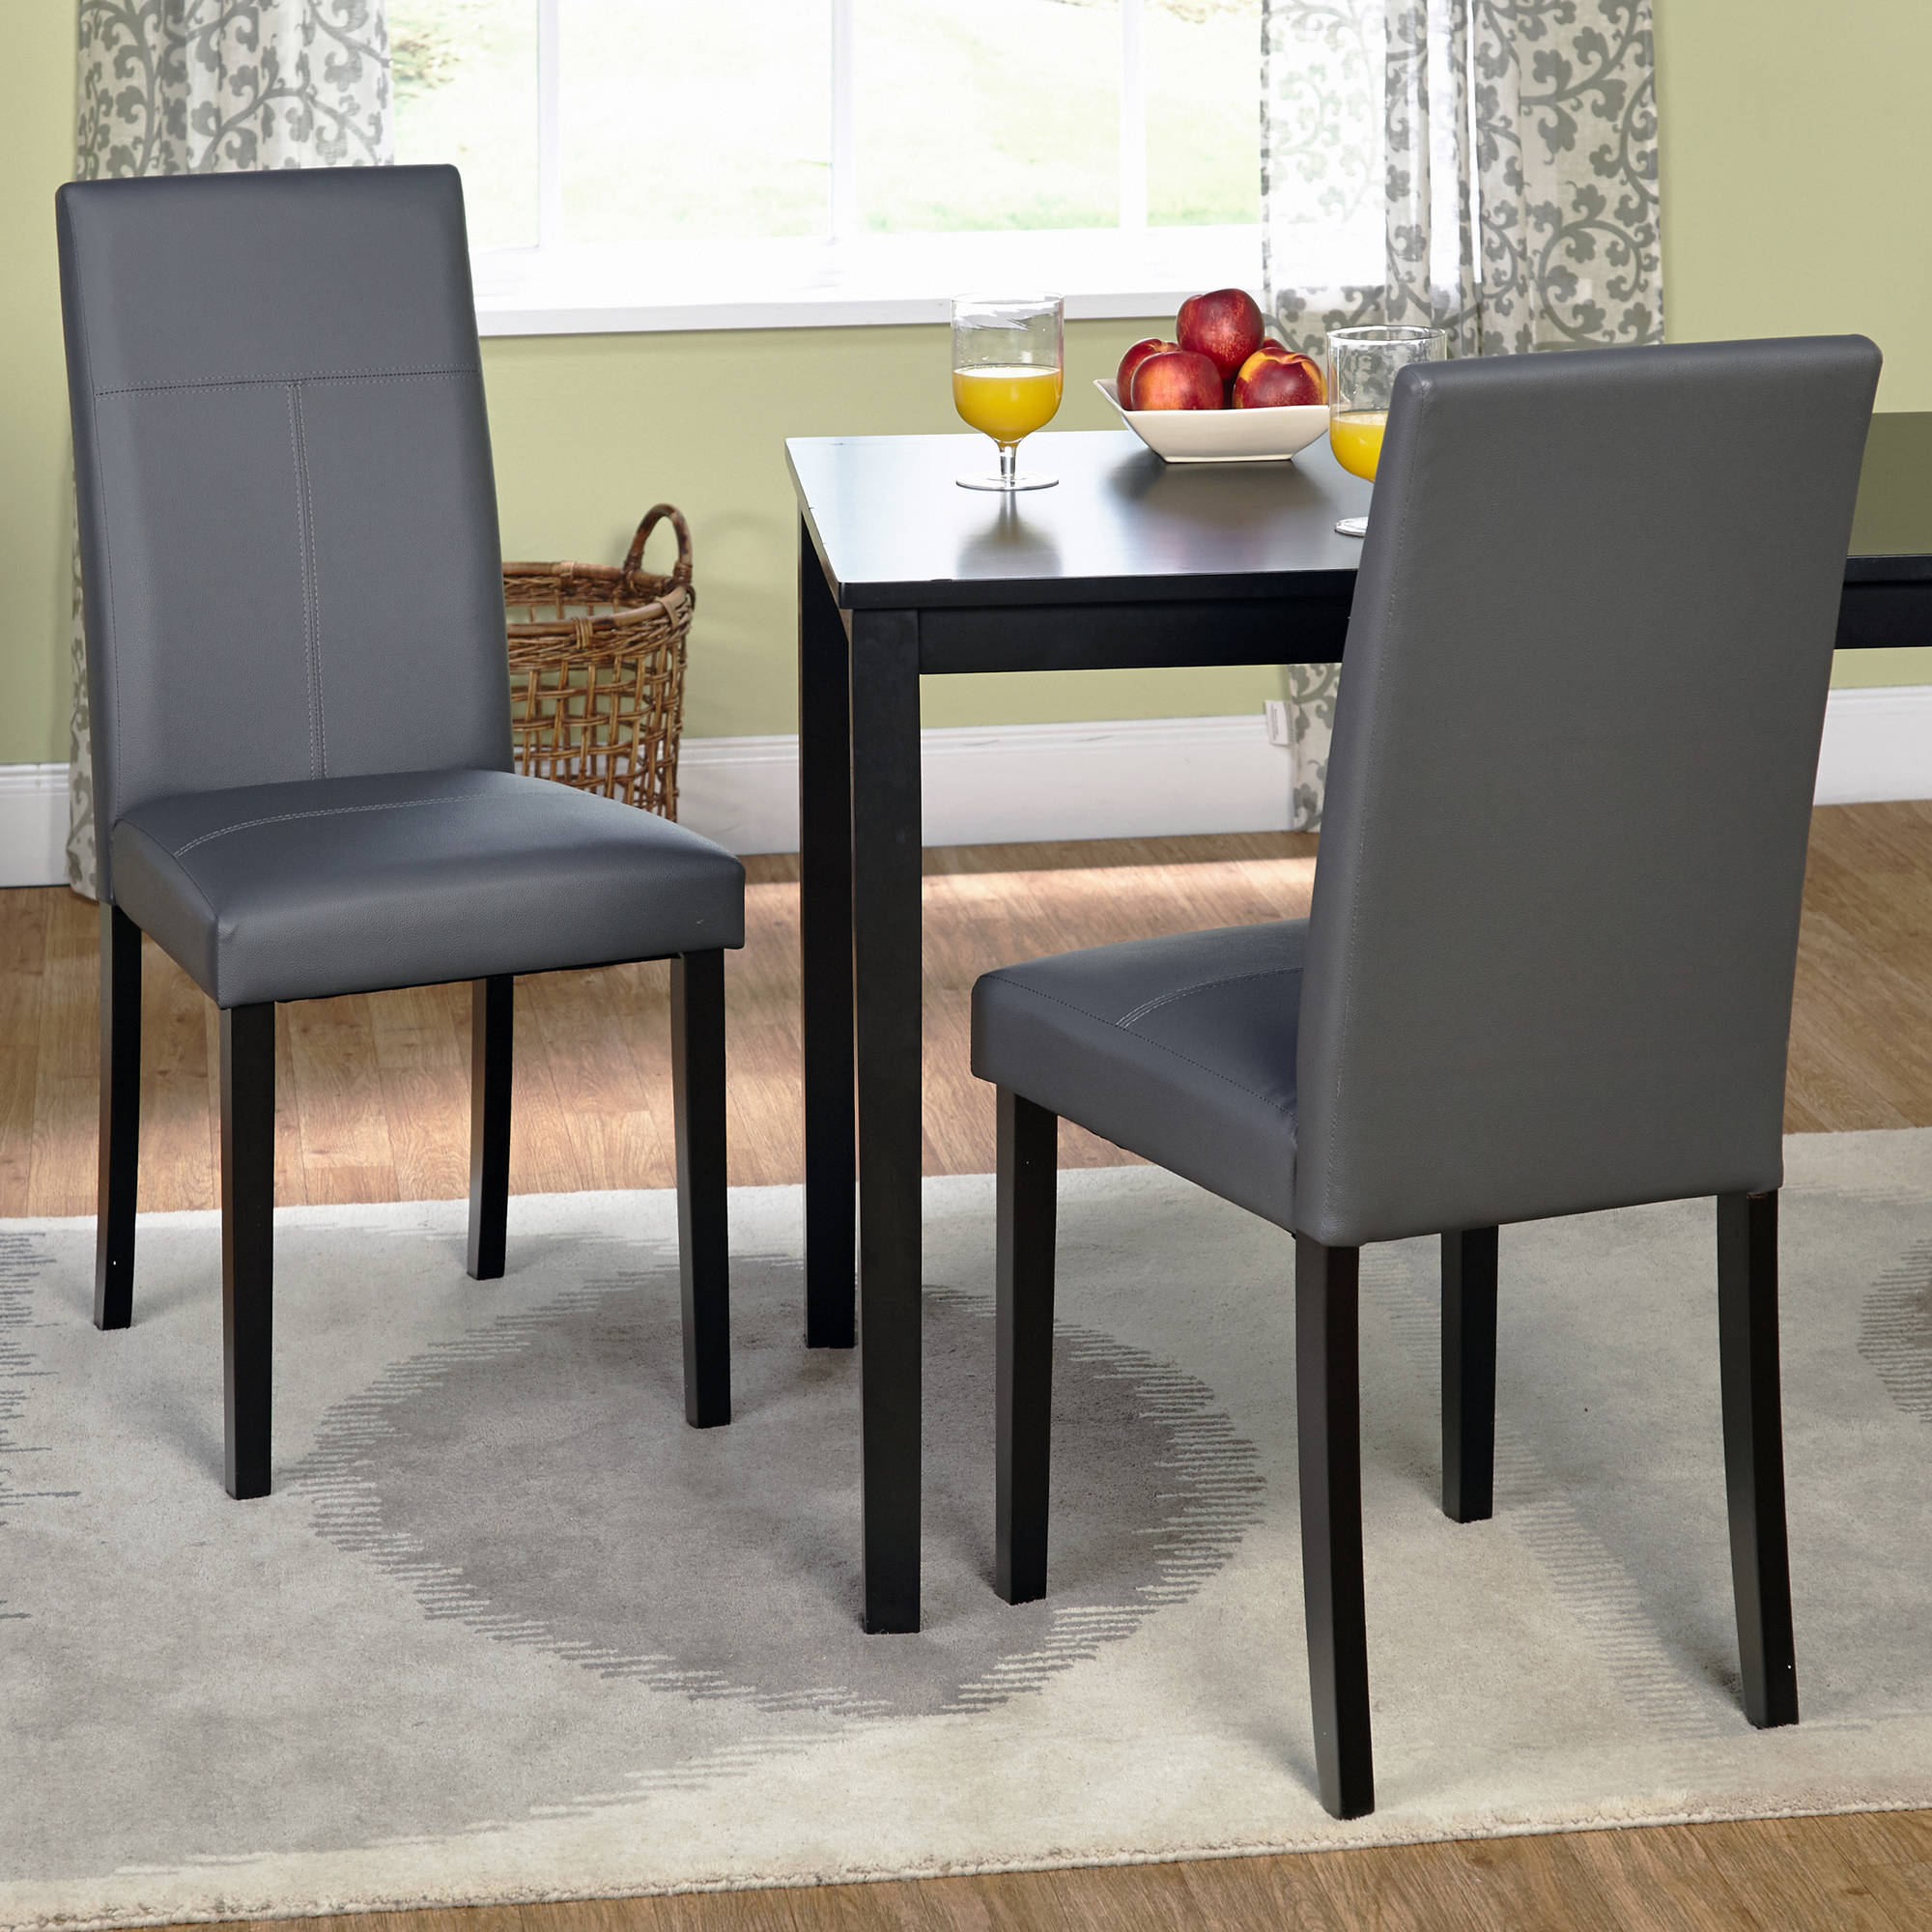 Discount Leather Chairs Faux Leather Parson Dining Chair Set Of 2